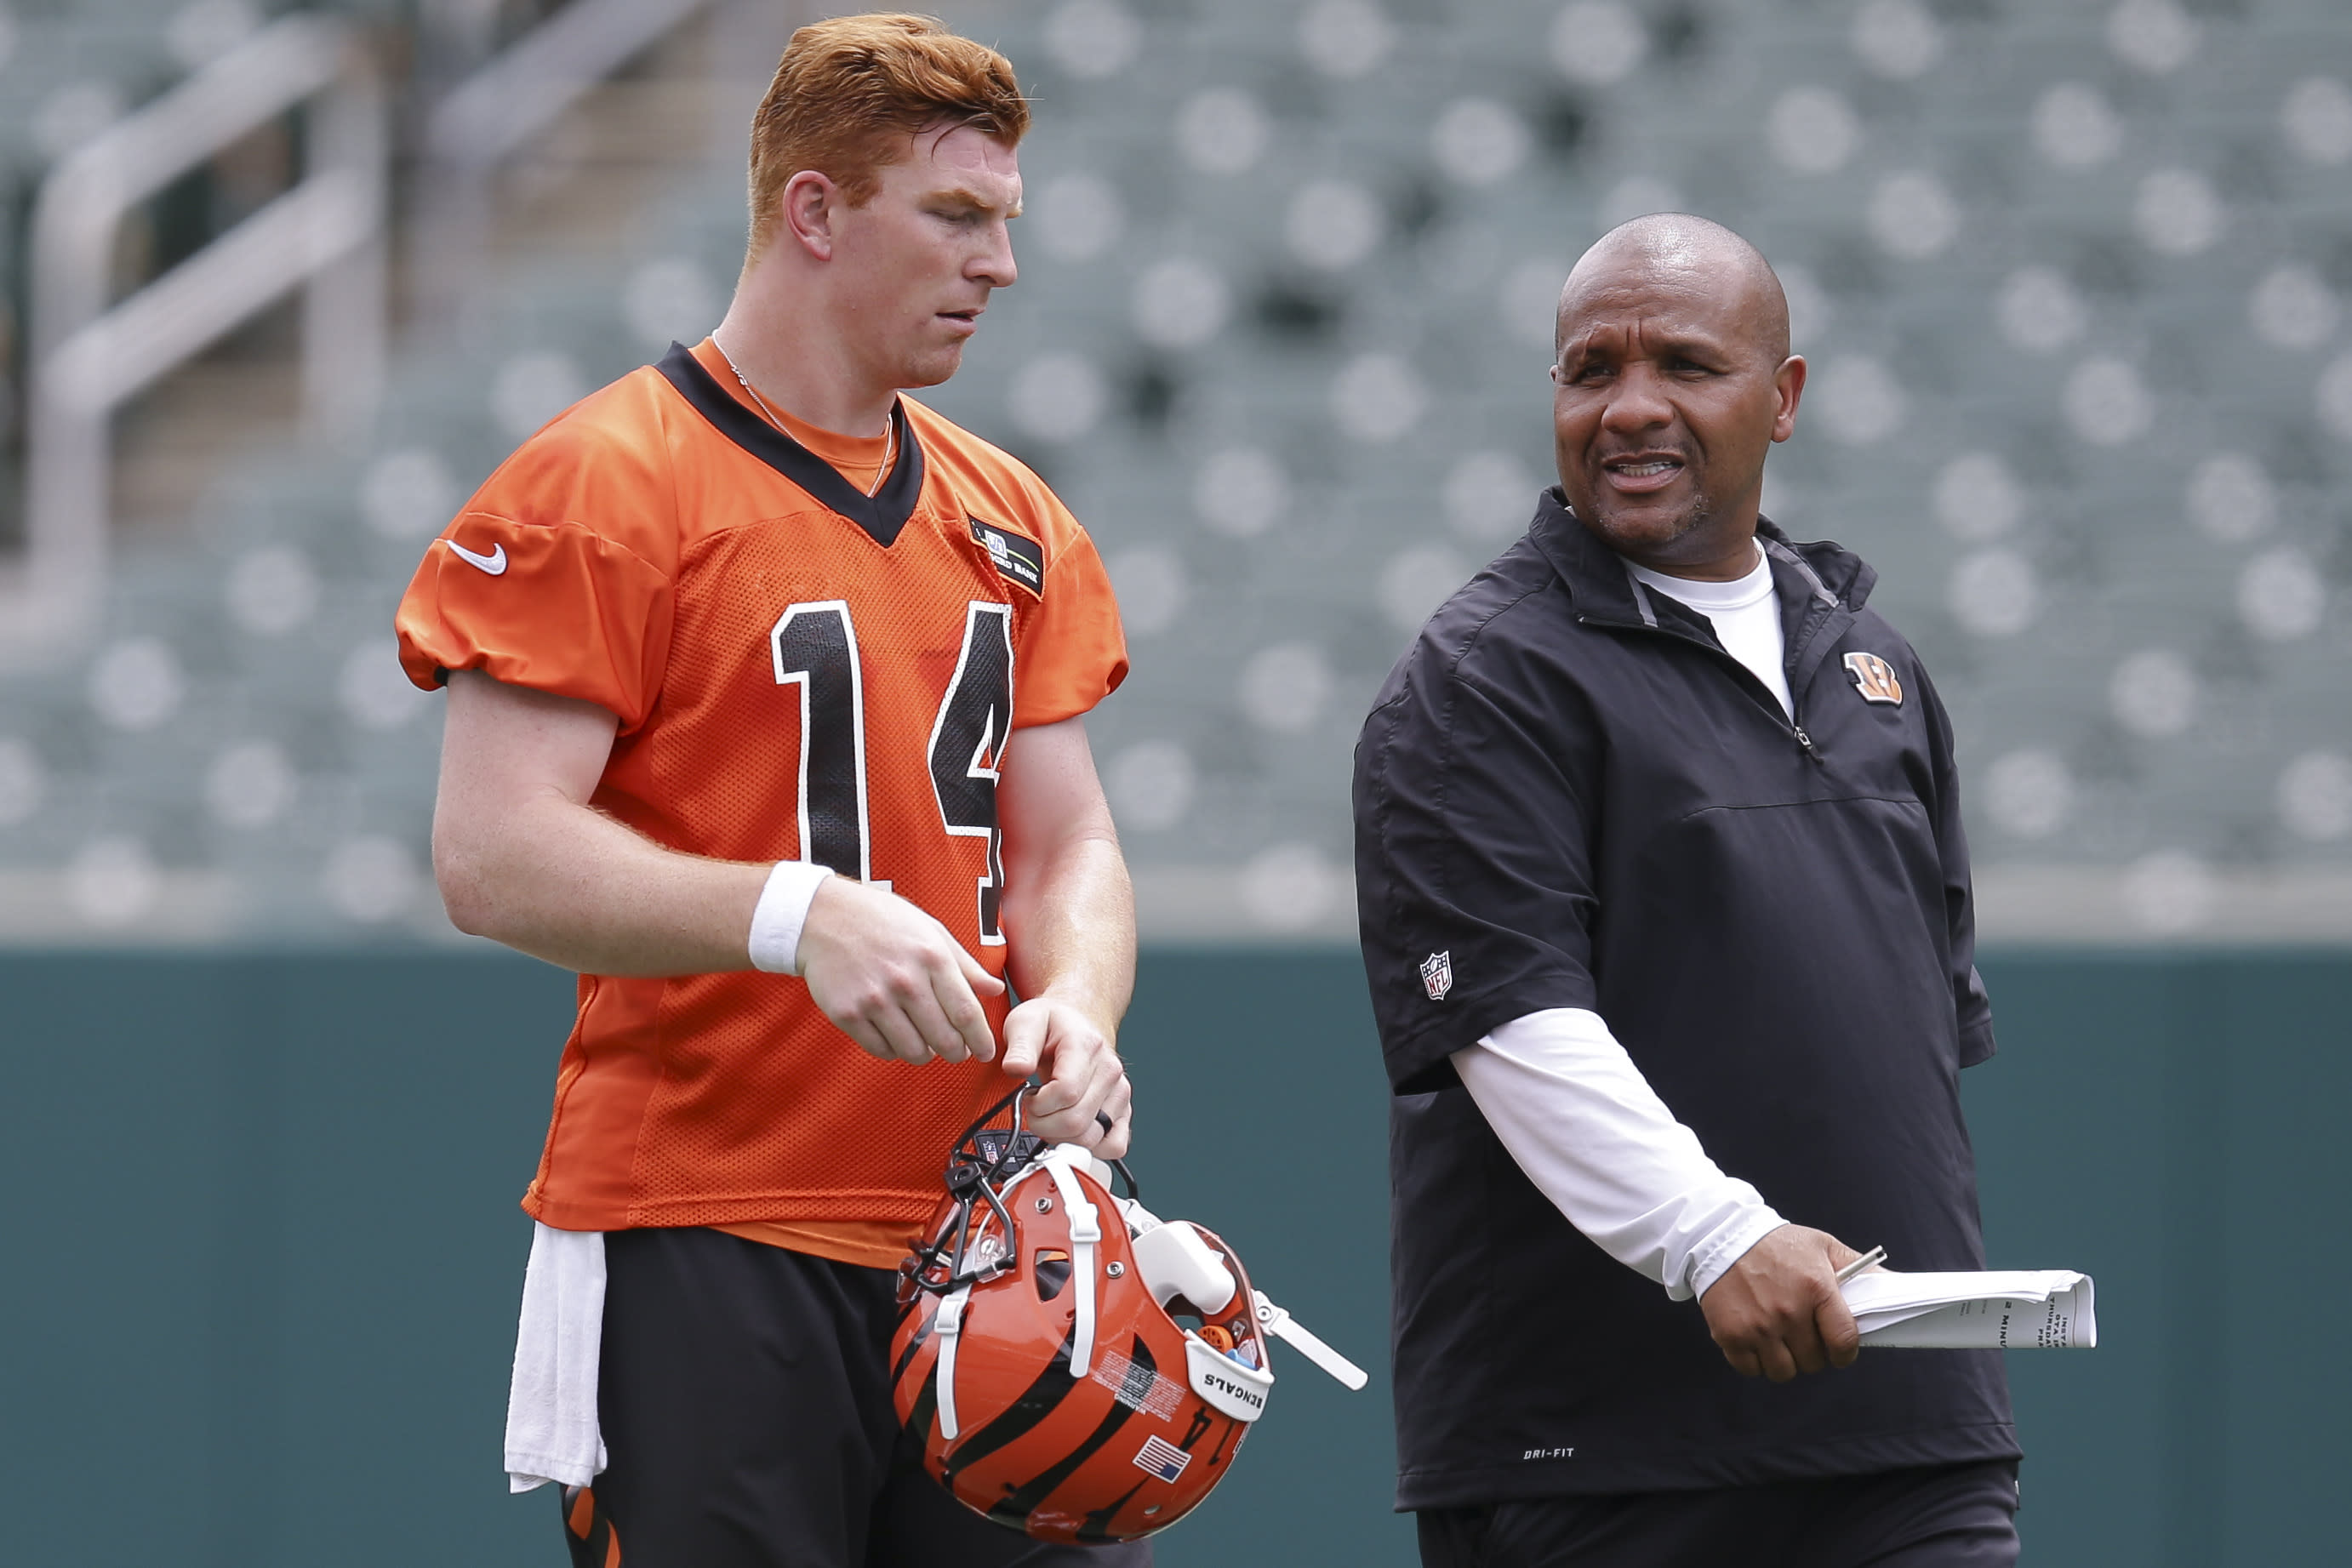 Andy Dalton booed during celebrity softball game in Cincinnati